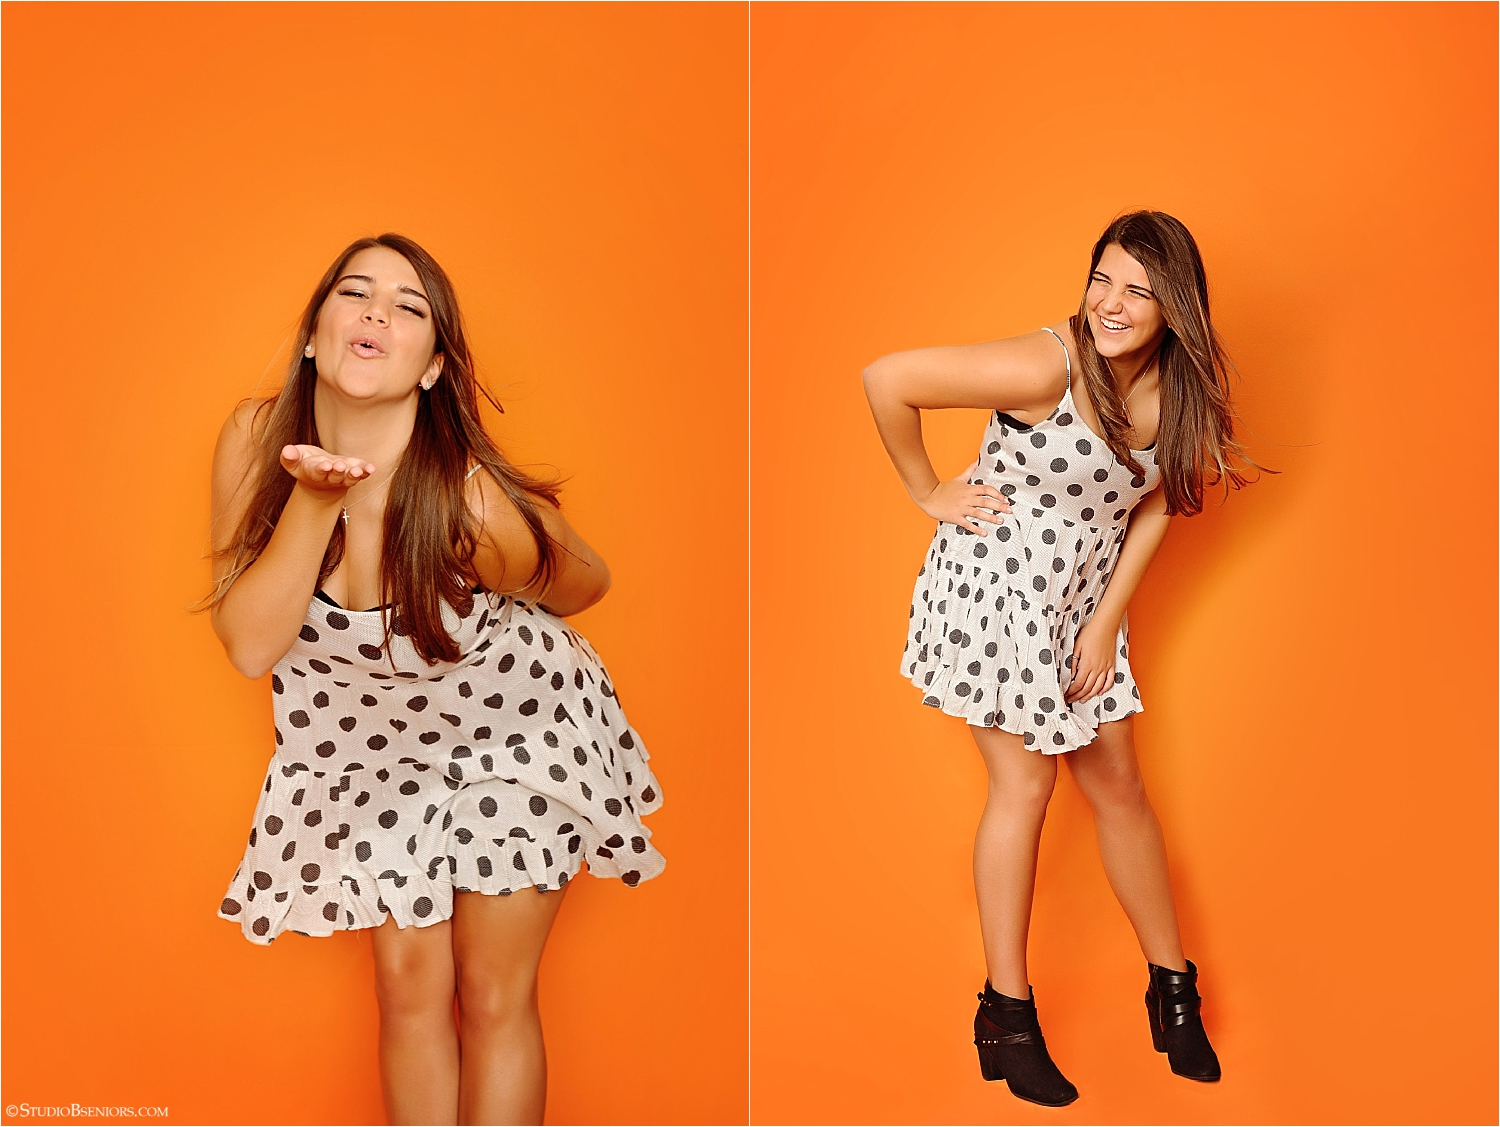 Senior Girl in Polka Dot Dress